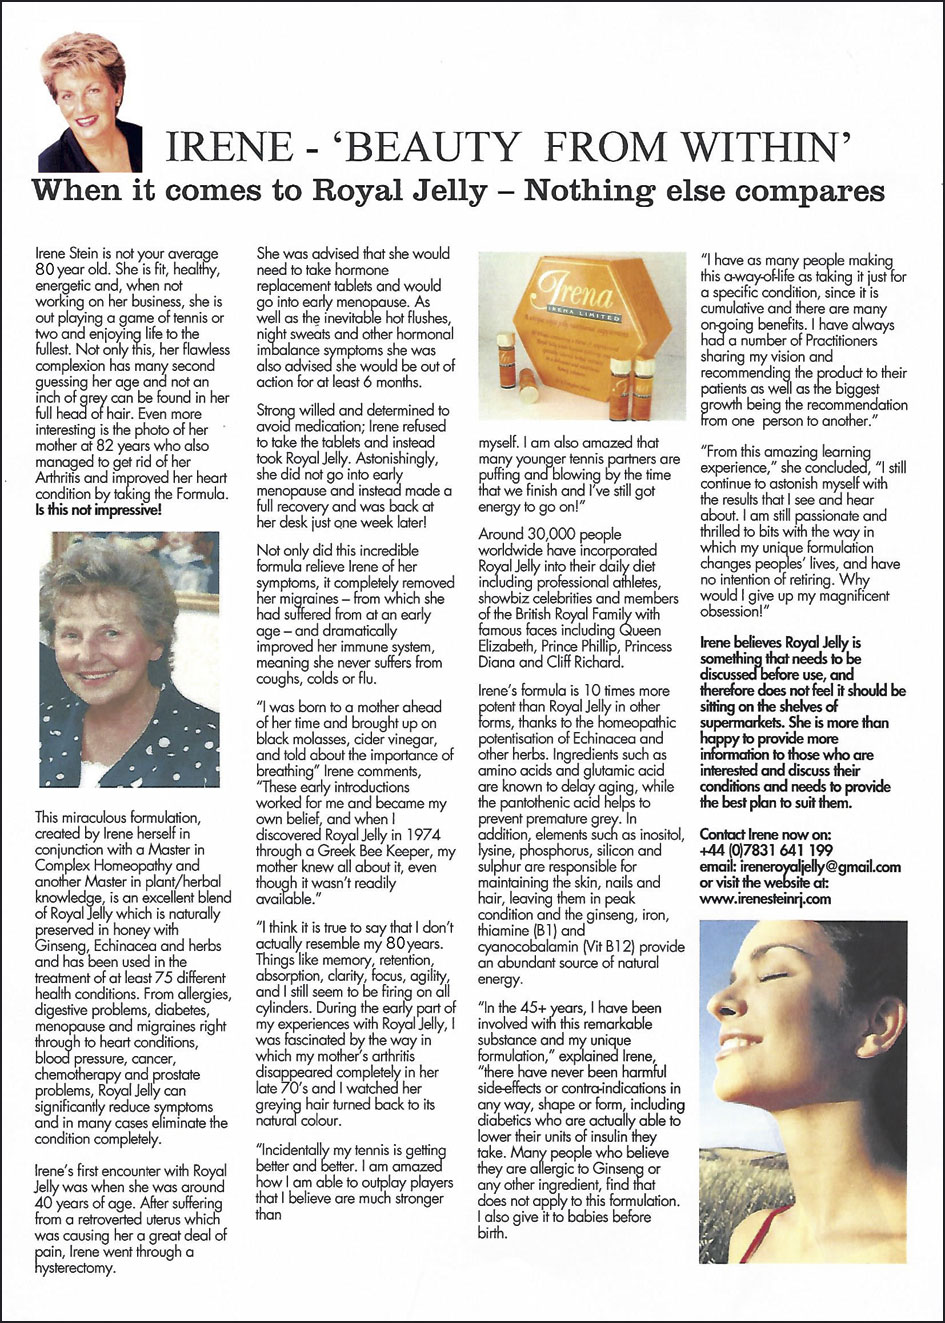 "IRENE - 'BEAUTY FROM WITHIN' When it comes to Royal Jelly - Nothing else compares   Irene Stein is not your average 80 year old. She is fit, healthy, energetic and, when not working on her business, she is out playing a game of tennis or two and enjoying life to the fullest. Not only this, her flawless complexion has many second guessing her age and not an inch of grey can be found in her full head of hair. Even more interesting is the photo of her mother at 82 years who also managed to get rid of her Arthritis by taking the Formula. Is this not impressive! This miraculous formulation, created by Irene herself in conjunction with a Master in Complex Homeopathy and another Master in plant/herbal knowledge, is an excellent blend of Royal Jelly which is naturally preserved in honey with Ginseng, Echinacea and herbs and has been used in the treatment of at least 75 different health conditions. From allergies, digestive problems, diabetes, menopause and migraines right through to heart conditions, blood pressure, cancer, chemotherapy and prostate problems, Royal Jelly can significantly reduce symptoms and in many cases eliminate the condition completely. Irene's first encounter with Royal Jelly was when she was around 40 years of age. After suffering from a retroverted uterus which was causing her a great deal of pain, Irene went through a hysterectomy. She was advised that she would need to take hormone replacement tablets and would go into early menopause. As well as the inevitable hot flushes, night sweats and other hormonal imbalance symptoms she was also advised she would be out of action for at least 6 months. Strong willed and determined to avoid medication; Irene refused to take the tablets and instead took Royal Jelly. Astonishingly, she did not go into early menopause and instead made a full recovery and was back at her desk just one week later! Not only did this incredible formula relieve Irene of her symptoms, it completely removed her migraines - from which she had suffered from at an early age - and dramatically improved her immune system, meaning she never suffers From coughs, colds or flu. ""I was born to a mother ahead of her time and brought up on black molasses, cider vinegar, and told about the importance of breathing"" Irene comments, ""These early introductions worked for me and became my own belief, and when I discovered Royal Jelly in 1974 through a Greek Bee Keeper, my mother knew all about it, even though it wasn't readily available. ""I think it is true to say that I don't actually resemble my 79 years. Things like memory, retention, absorption, clarity, focus, agility, and I still seem to be firing on all cylinders. During the early part of my experiences with Royal Jelly, I was fascinated by the way in which my mother's arthritis disappeared completely in her late 70's and I watched her greying hair turned back to its natural colour. ""Incidentally my tennis is getting better and better. I am amazed how I am able to outplay players that I believe are much stronger than myself. I am also amazed that many younger tennis partners are puffing and blowing by the time that we finish and I've still got energy to go on!"" Around 30,000 people worldwide have incorporated Royal Jelly into their daily diet including professional athletes, showbiz celebrities and members of the British Royal Family with famous faces including Queen Elizabeth, Prince Phillip, Princess Diana and Cliff Richard. Irene's formula is 10 times more potent than Royal Jelly in other forms, thanks to the homeopathic potentisation Echinacea and other herbs. Ingredients such as amino acid and glutamic acid are known to delay ageing, while the pantothenic acid helps to prevent premature grey. In addition, elements such as inositol, lysine, phosphorus, silicon and sulphur are responsible for maintaining the skin, nails and hair, leaving them in peak condition and the ginseng, iron, thiamine (Bl) and cyanocobalamin (Vit B12) provide an abundant source of natural energy. ""In the 40+ years, I have been involved with this remarkable substance and my unique formulation,"" explained Irene, ""there have never been harmful side-effects or contra-indications in any way, shape or form, including diabetics who are actually able to lower their units of insulin they take. Many people who believe they are allergic to Ginseng or any other ingredient, find that does not apply to this formulation. I also give it to babies before birth. ""I have as many people making this a-way-of-life as taking it just for a specific condition, since it is cumulative and there are many on-going benefits. I have always had a number of Practitioners sharing my vision and recommending the product to their patients as well as the biggest growth being the recommendation from 1 person to another."" ""From this amazing learning experience,"" she concluded, ""I still continue to astonish myself with the results that I see and hear about. I am still passionate and thrilled to bits with the way in which my unique formulation changes peoples' lives, and have no intention of retiring. Why would I give up my magnificent obsession!"" Irene believes Royal Jelly is something that needs to be discussed before use, and therefore does not feel it should be sitting on the shelves of supermarkets. She is more than happy to provide more information to those who are interested and discuss their conditions and needs to provide the best plan to suit them. Contact Irene now on: +44 (0)7831 641199, email:  ireneroyaljelly@gmail.com or visit the website at: www.irenesteinrj.com"